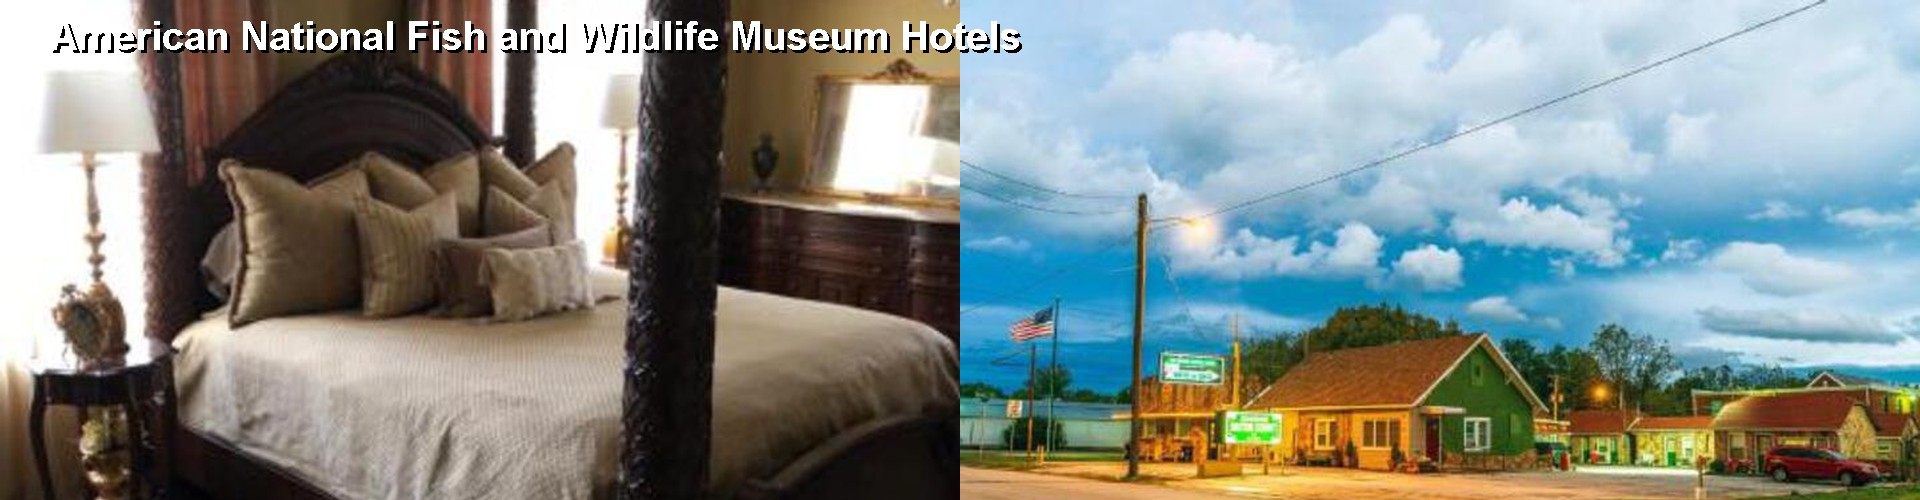 5 Best Hotels near American National Fish and Wildlife Museum